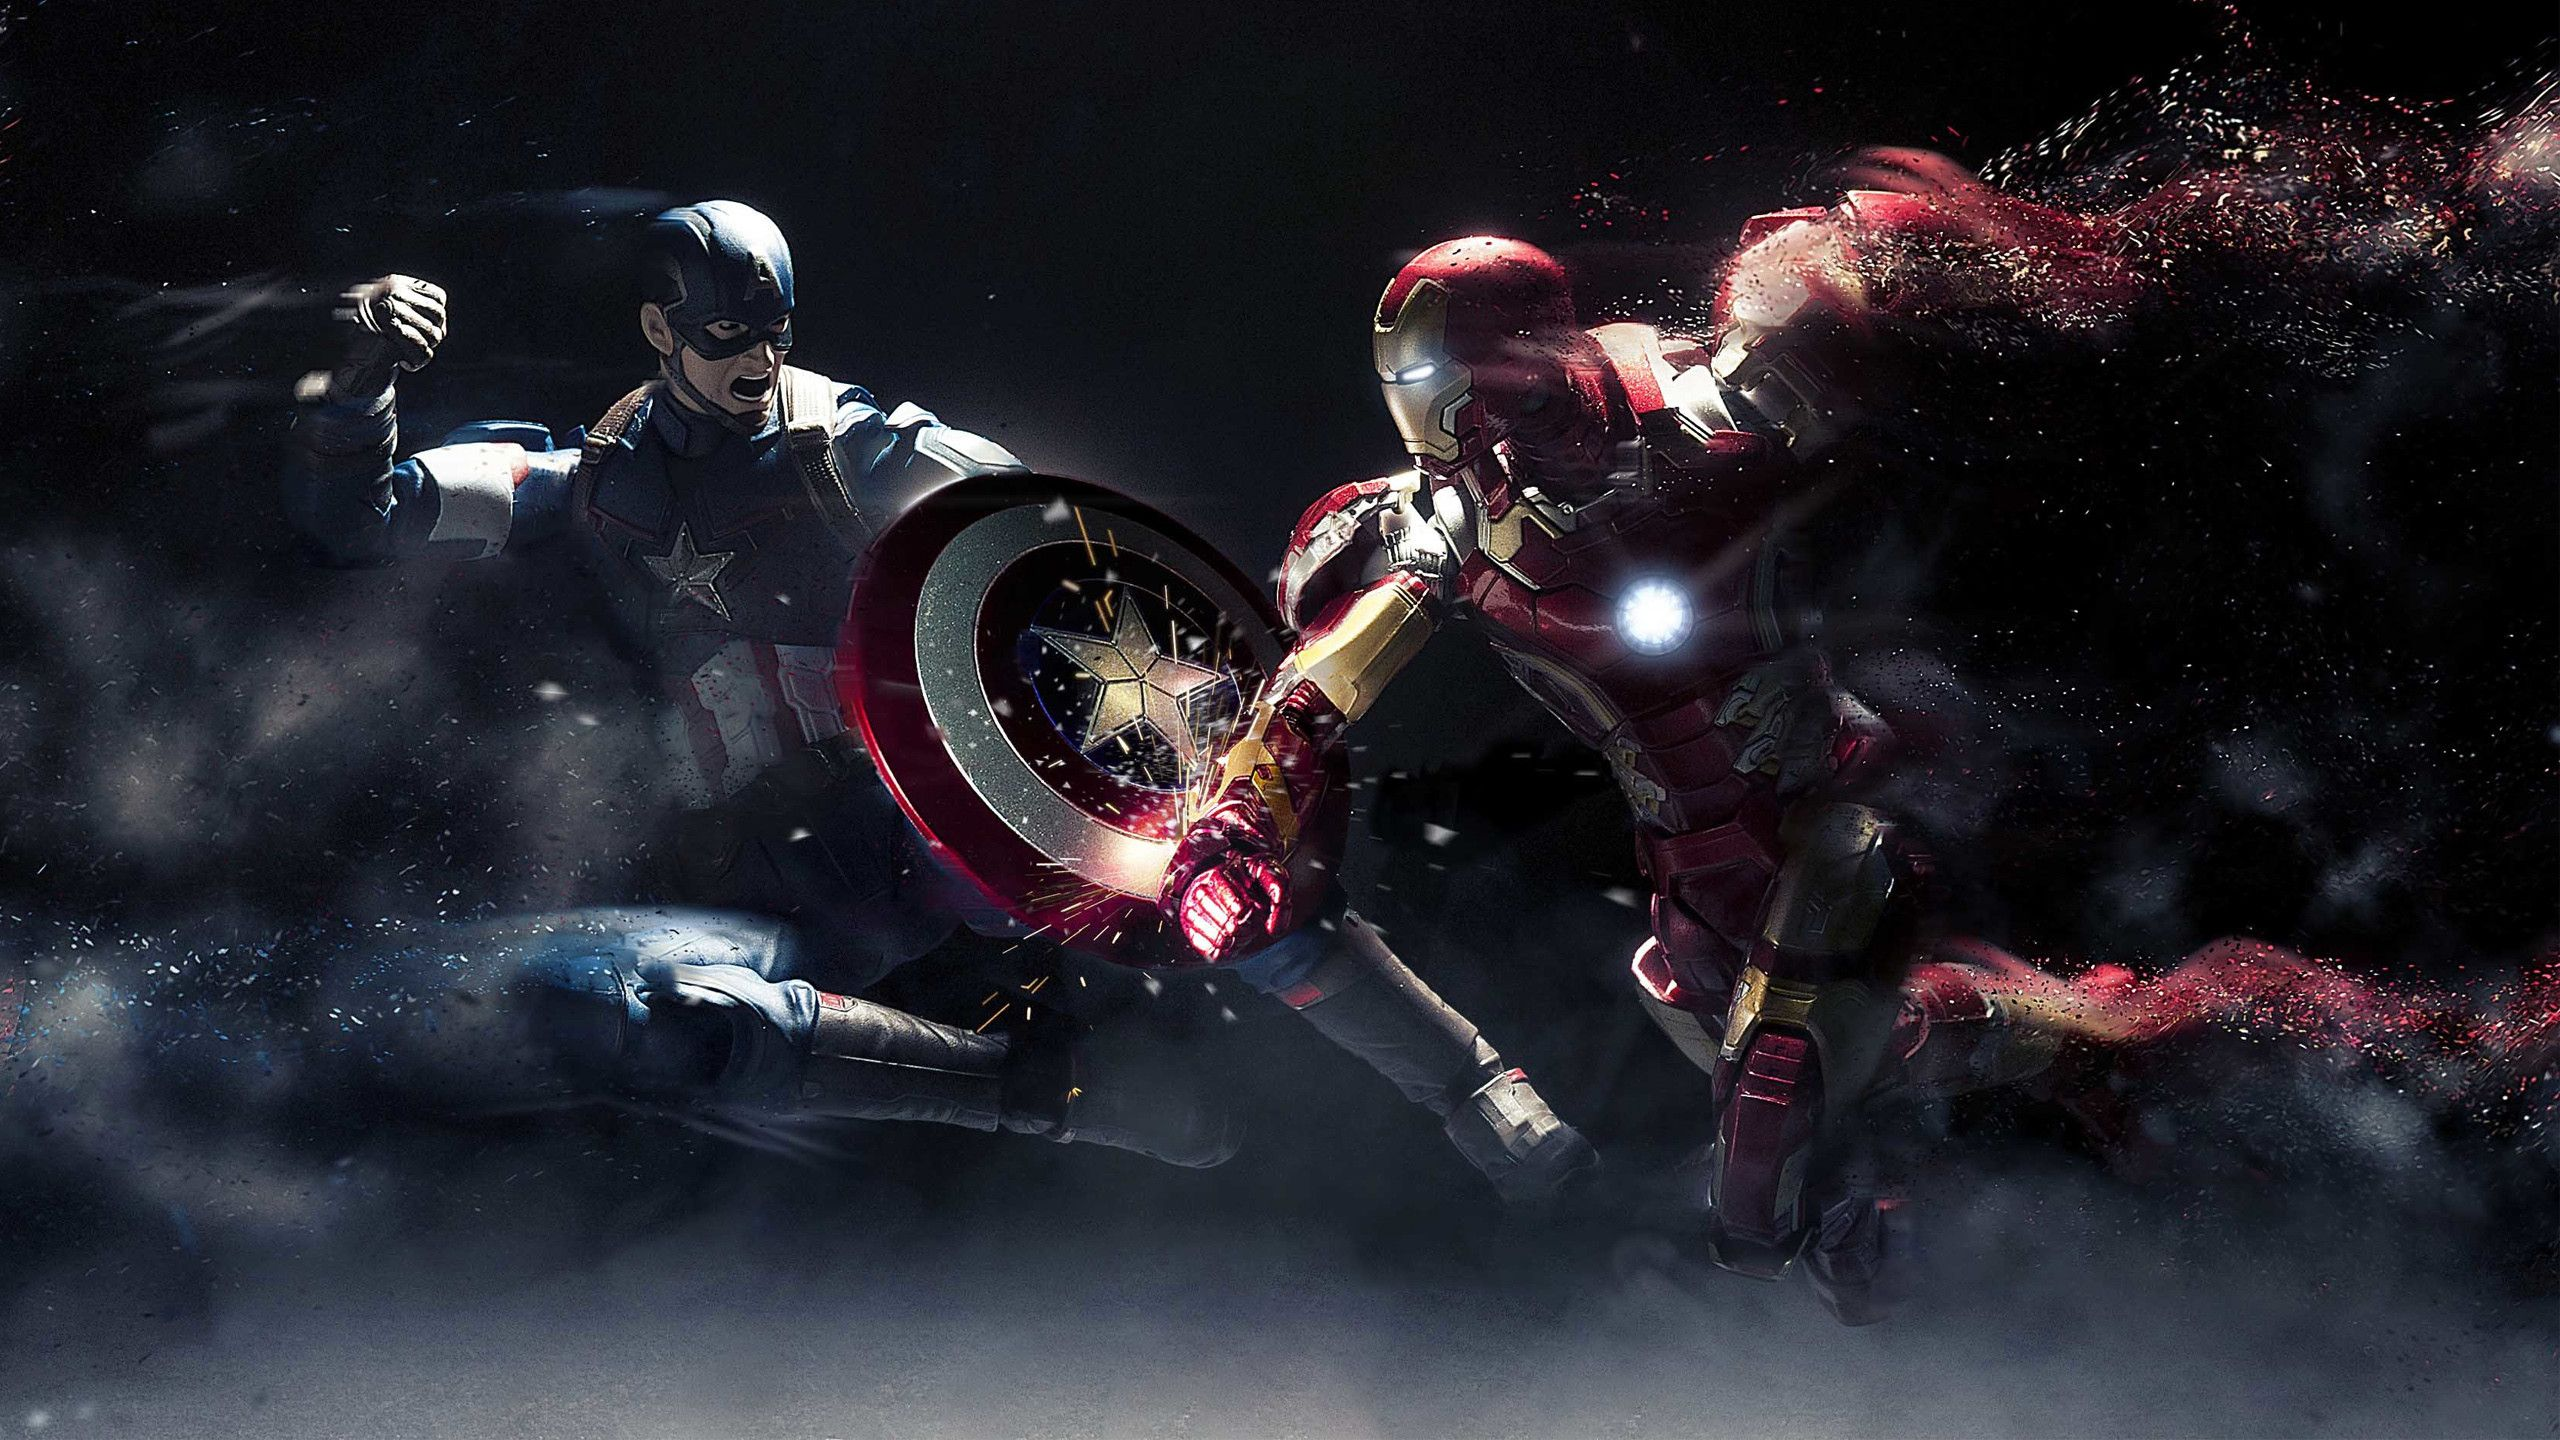 2560x1440 Captain America Civil War 2016 Wallpapers Ultra Hd For